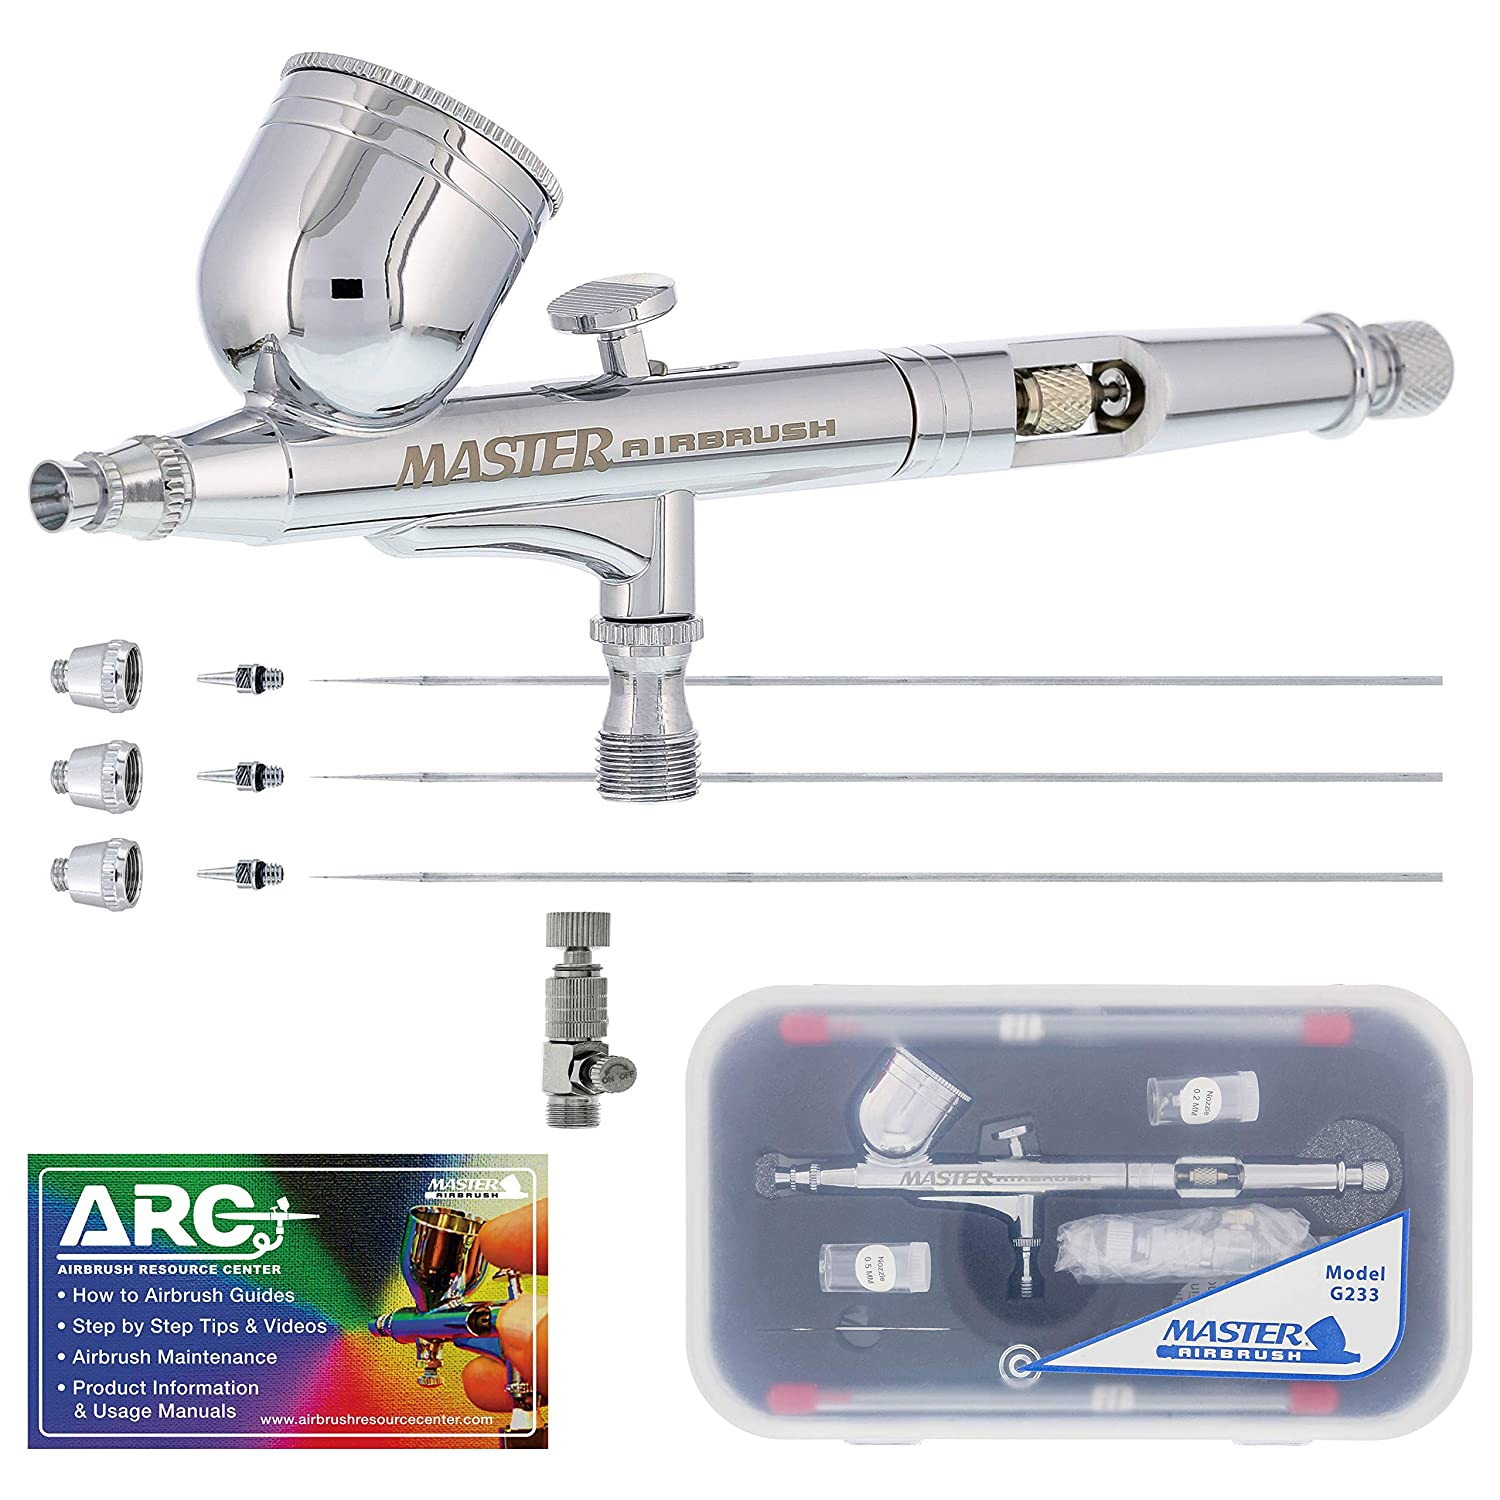 Master Airbrush Master Performance G233 Pro Set with 3 Nozzle Sets (0.2, 0.3 & 0.5mm Needles, Fluid Tips and Air Caps)